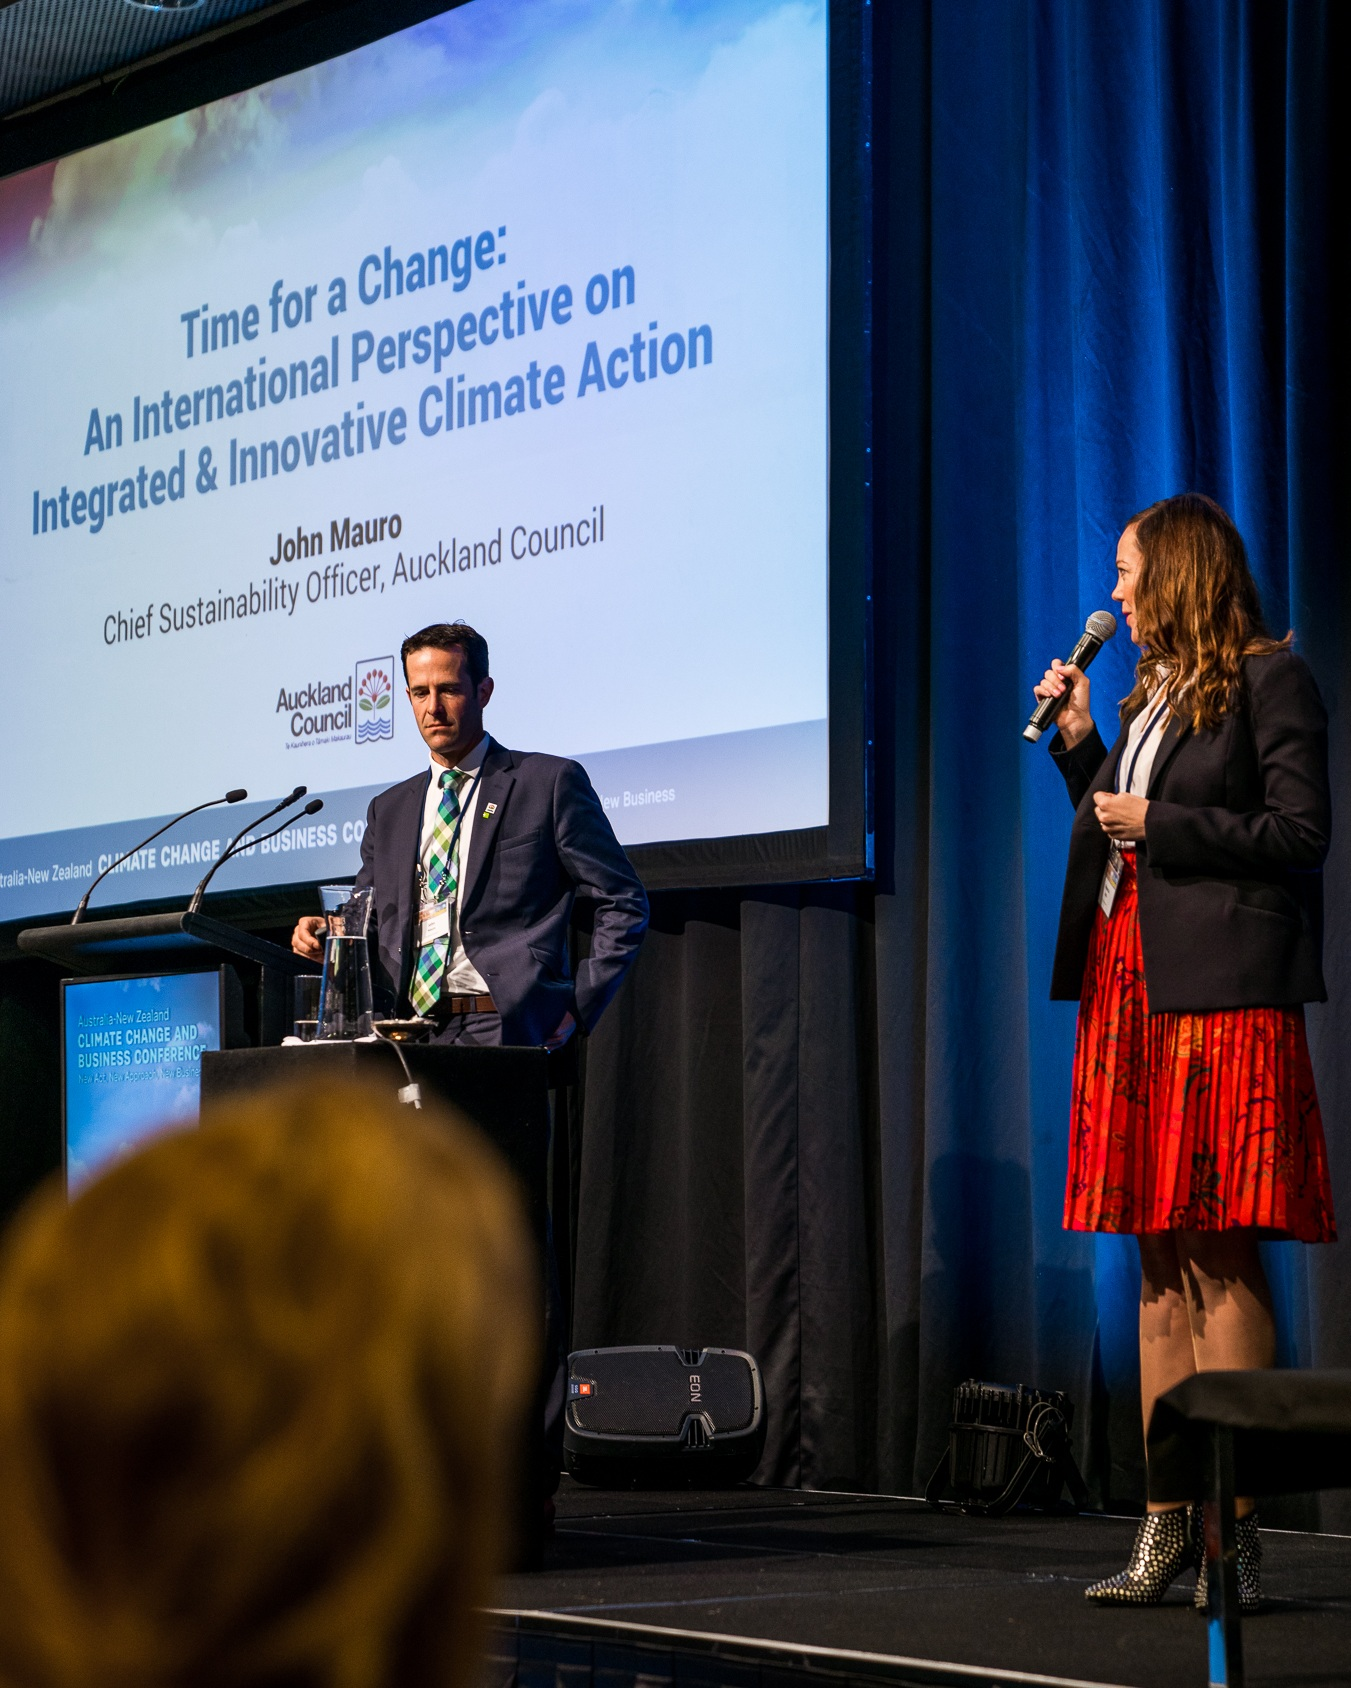 The Lever Room's founder Rebecca Mills chairing a session at the Autralia-New Zealand Climate Change and Business Conference.